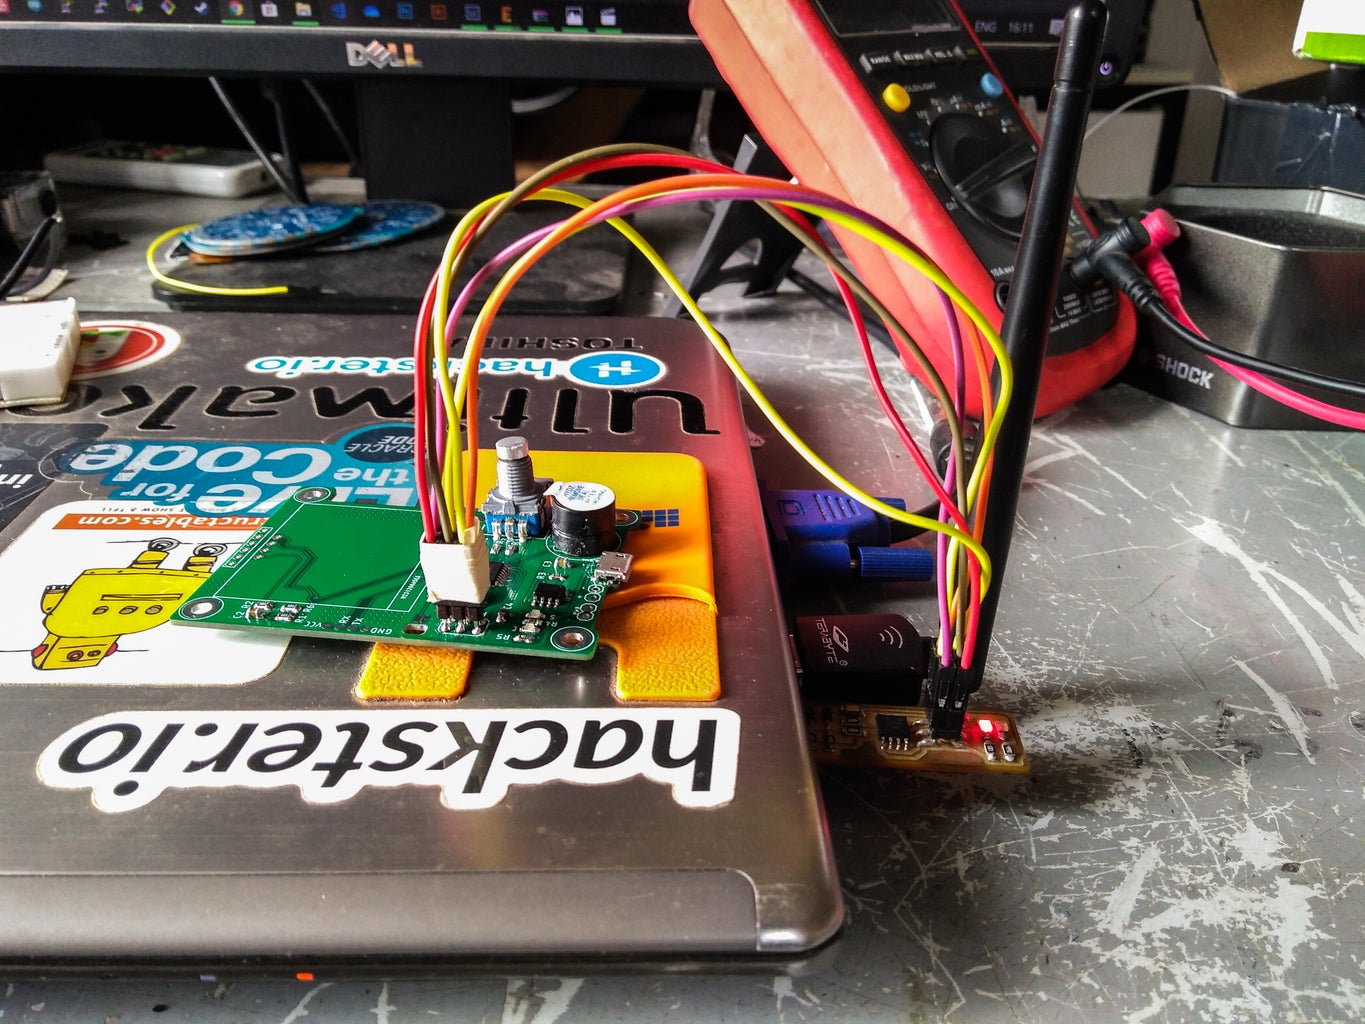 Load Firmware in to the Xpedit